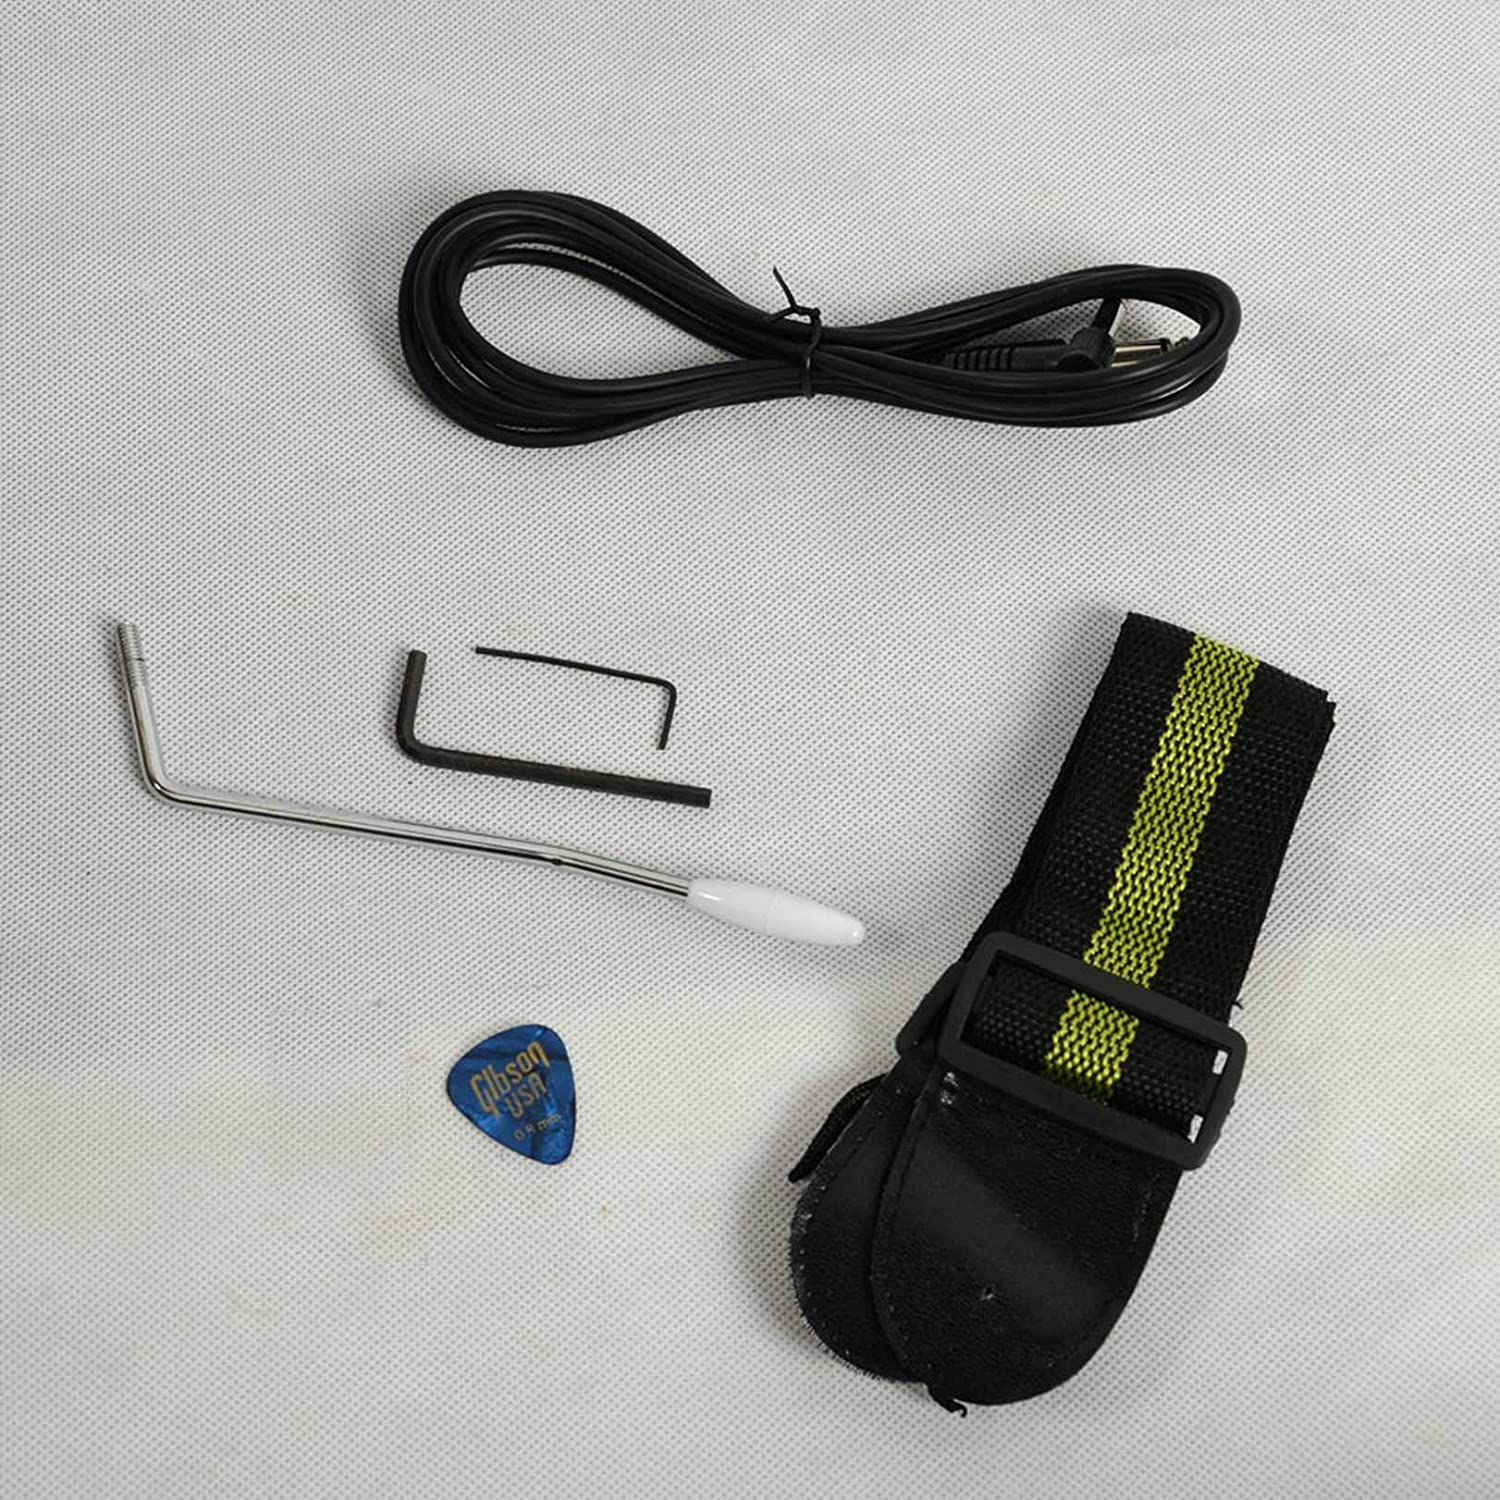 Wrench Tool Red Rocker Strap Paddle Electric Guitars for Beginner Starter Novice Flame Shaped Electric Guitar HSH Pickup Bag Cable